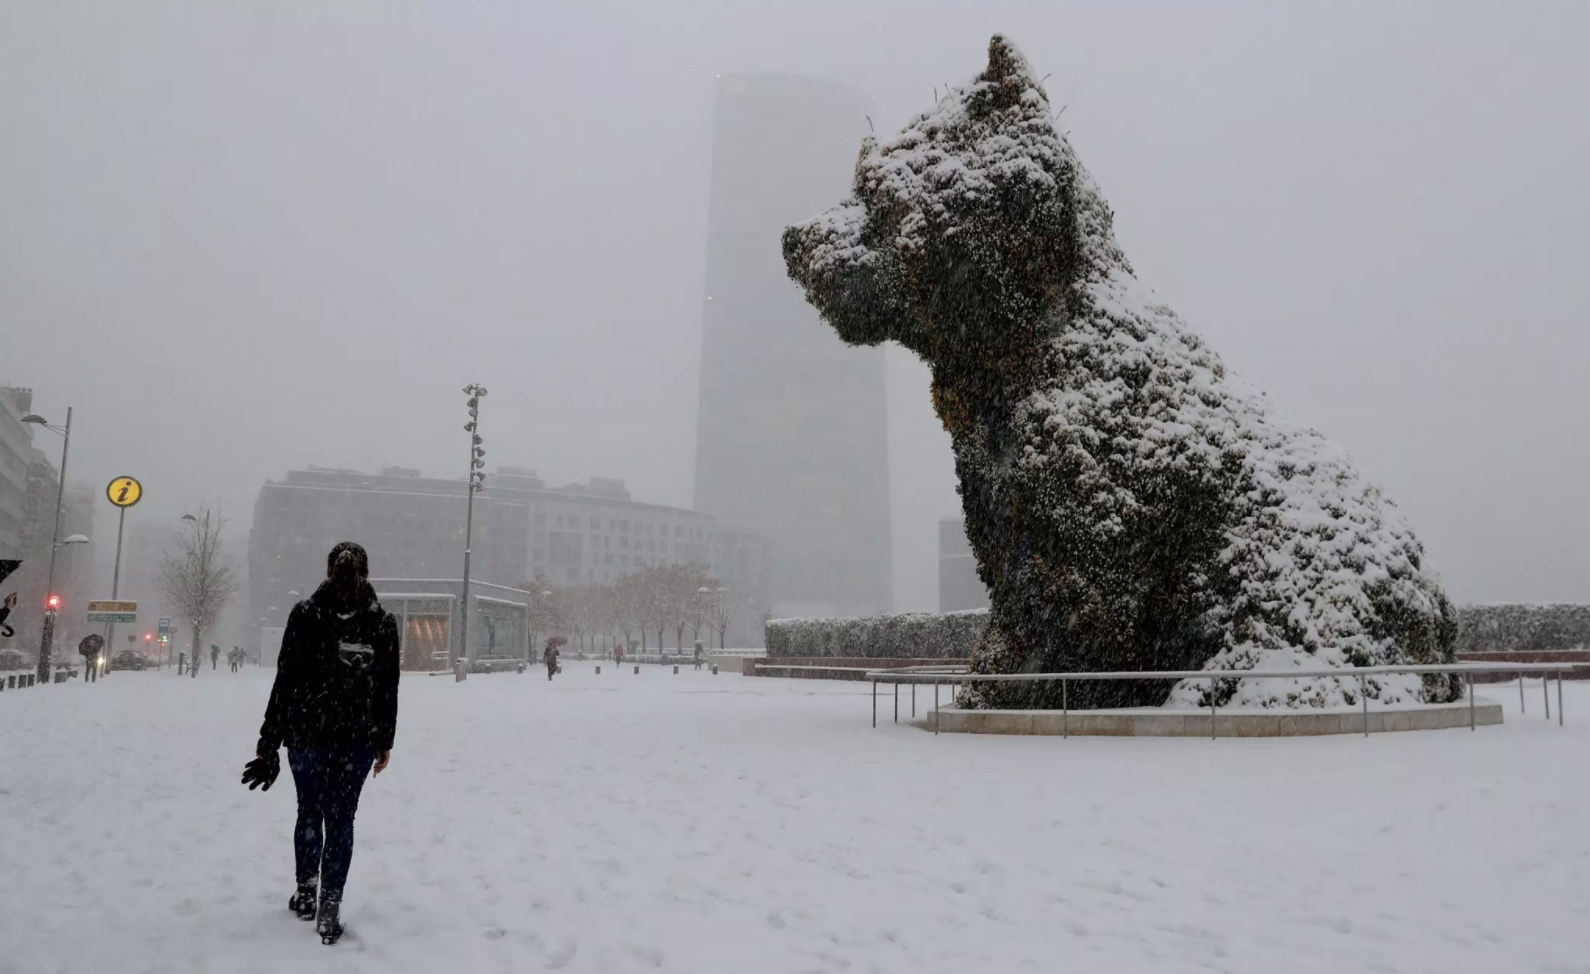 A puppy sculpture by Jeff Koons was covered with snow in Bilbao, Spain. CreditLuis Tejido/European Pressphoto Agency